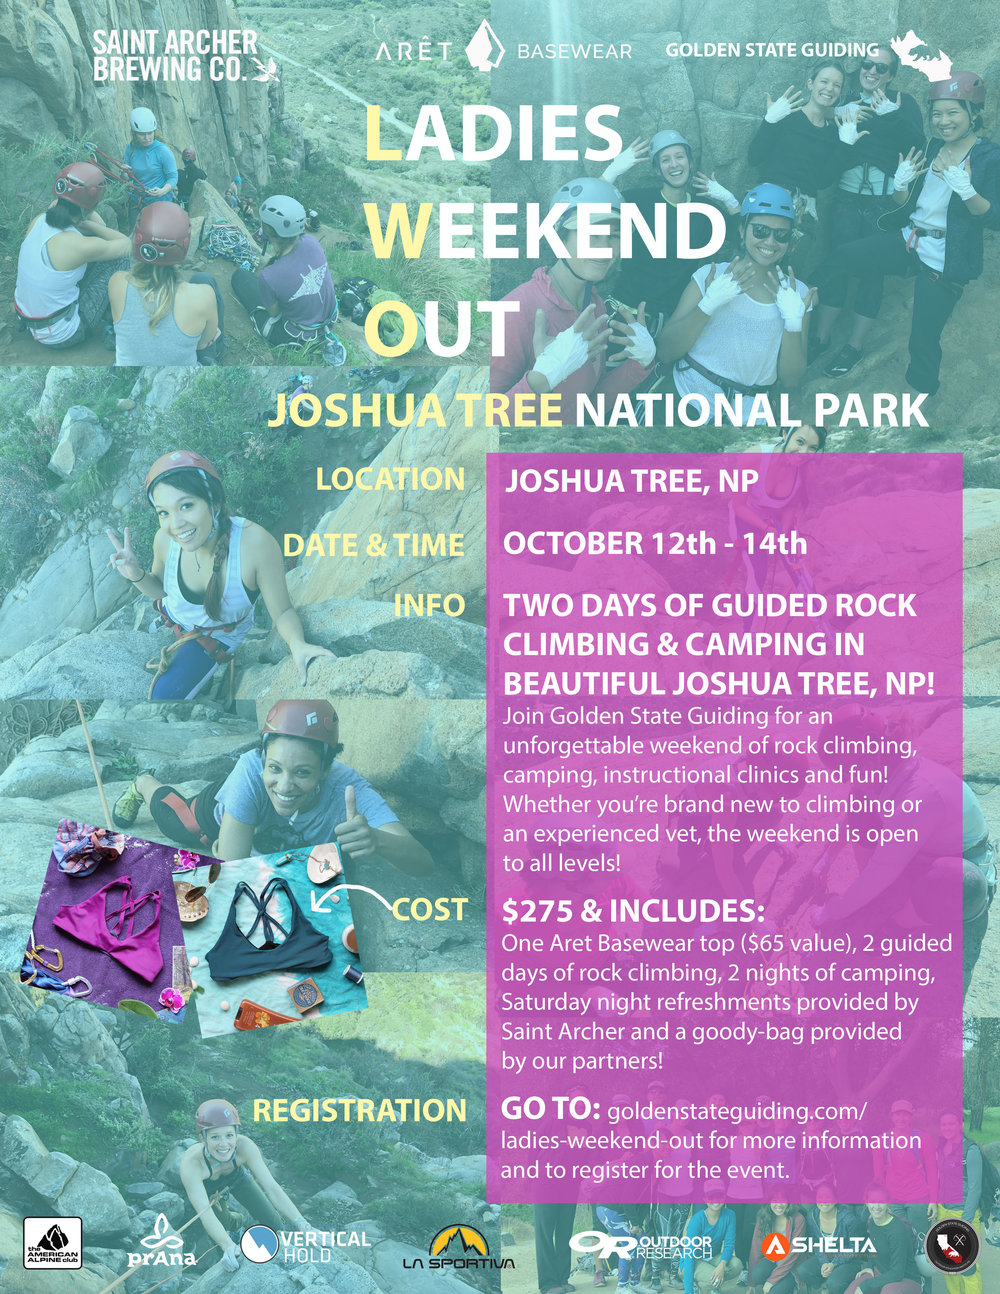 Ladies Weekend Out Event Joshua Tree Rock Climbing